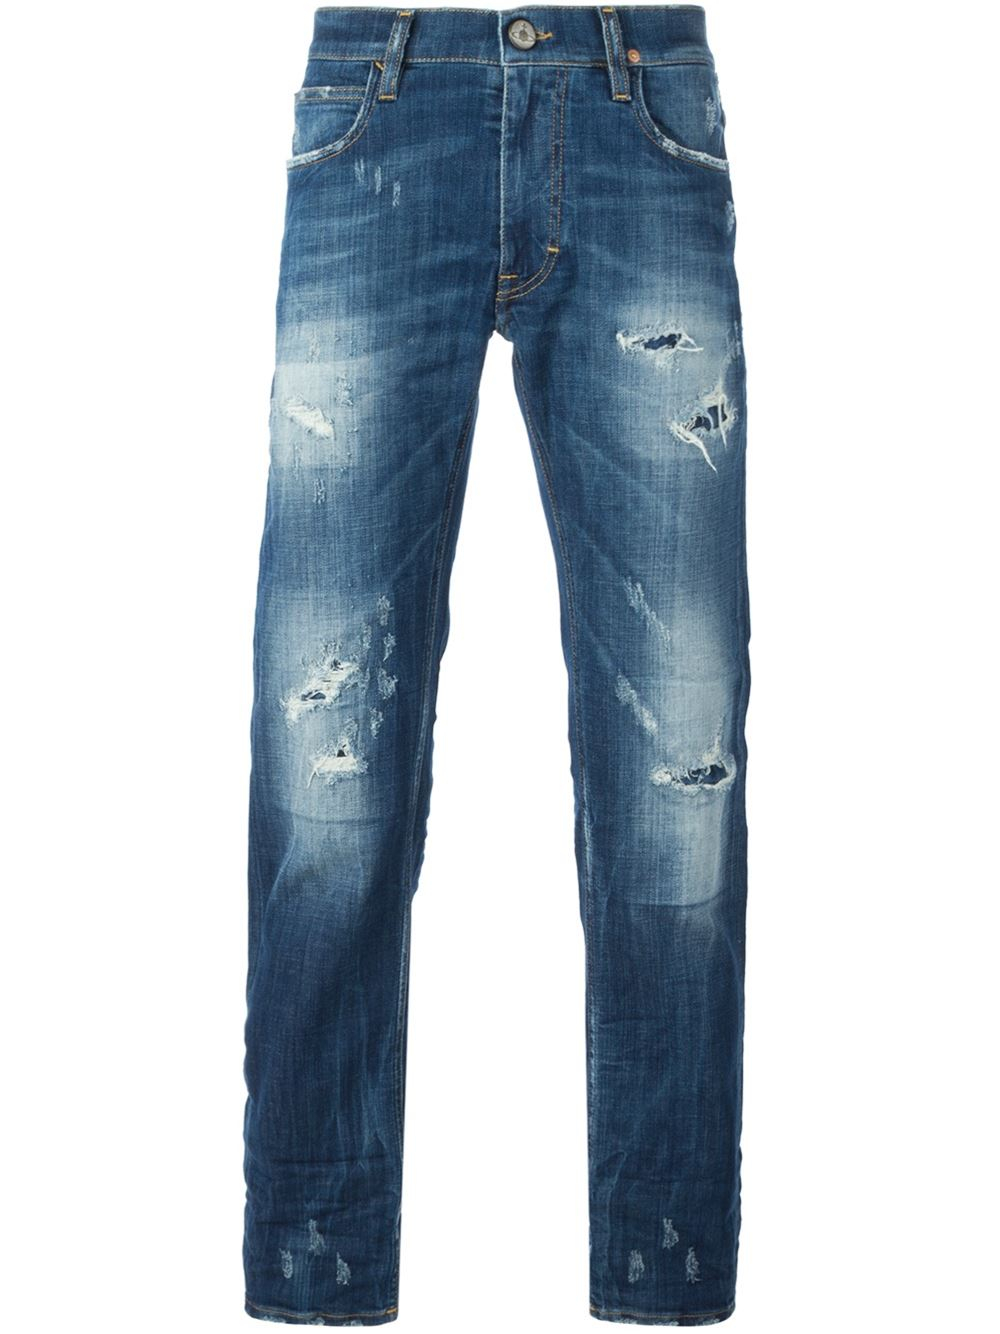 Mens Cheap True Religion Jeans